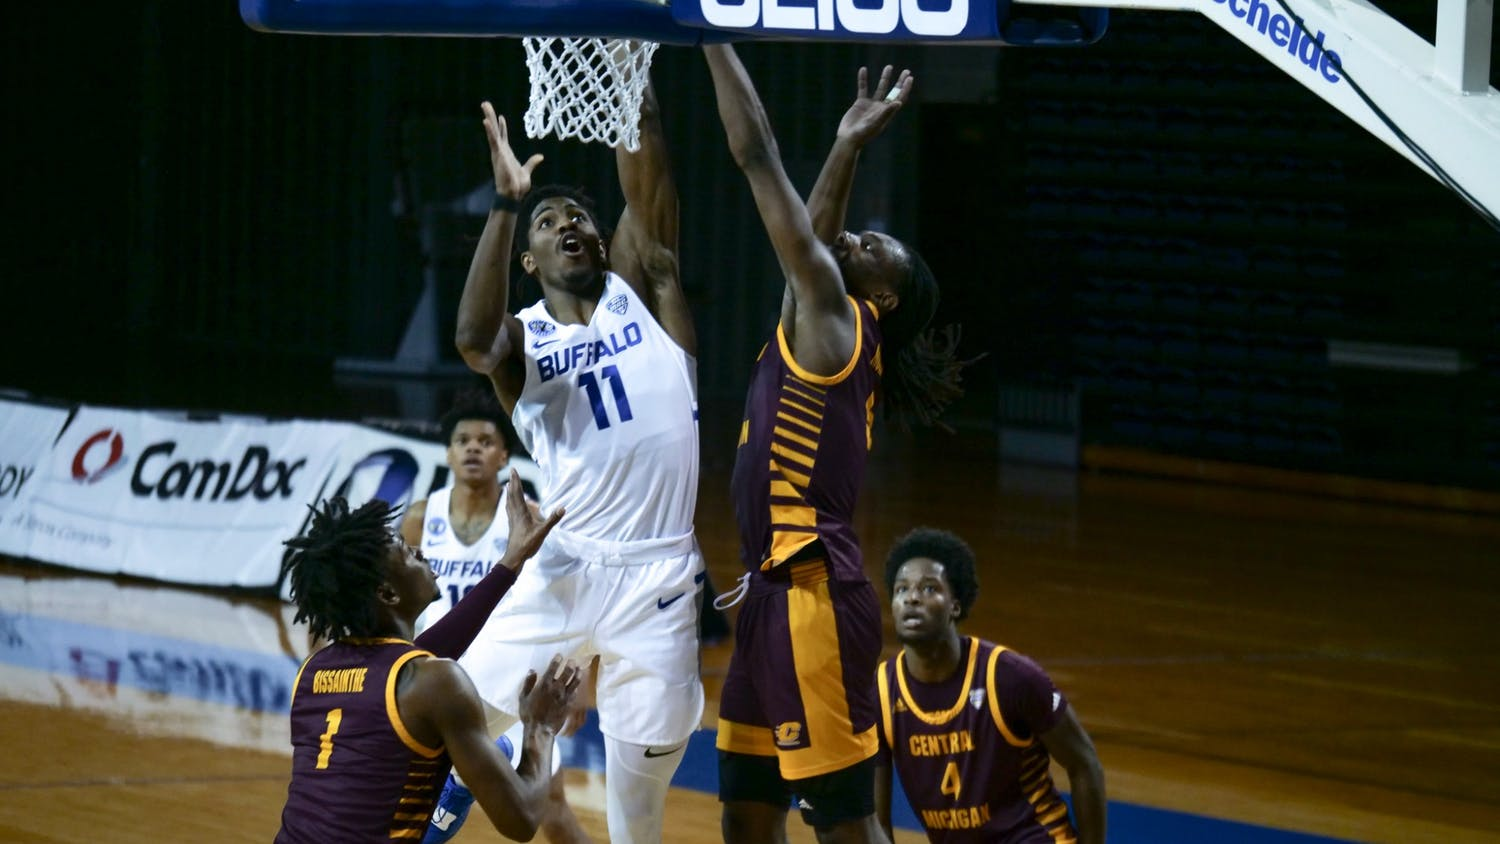 UB men's basketball beat Central Michigan 85-73 on Thursday.